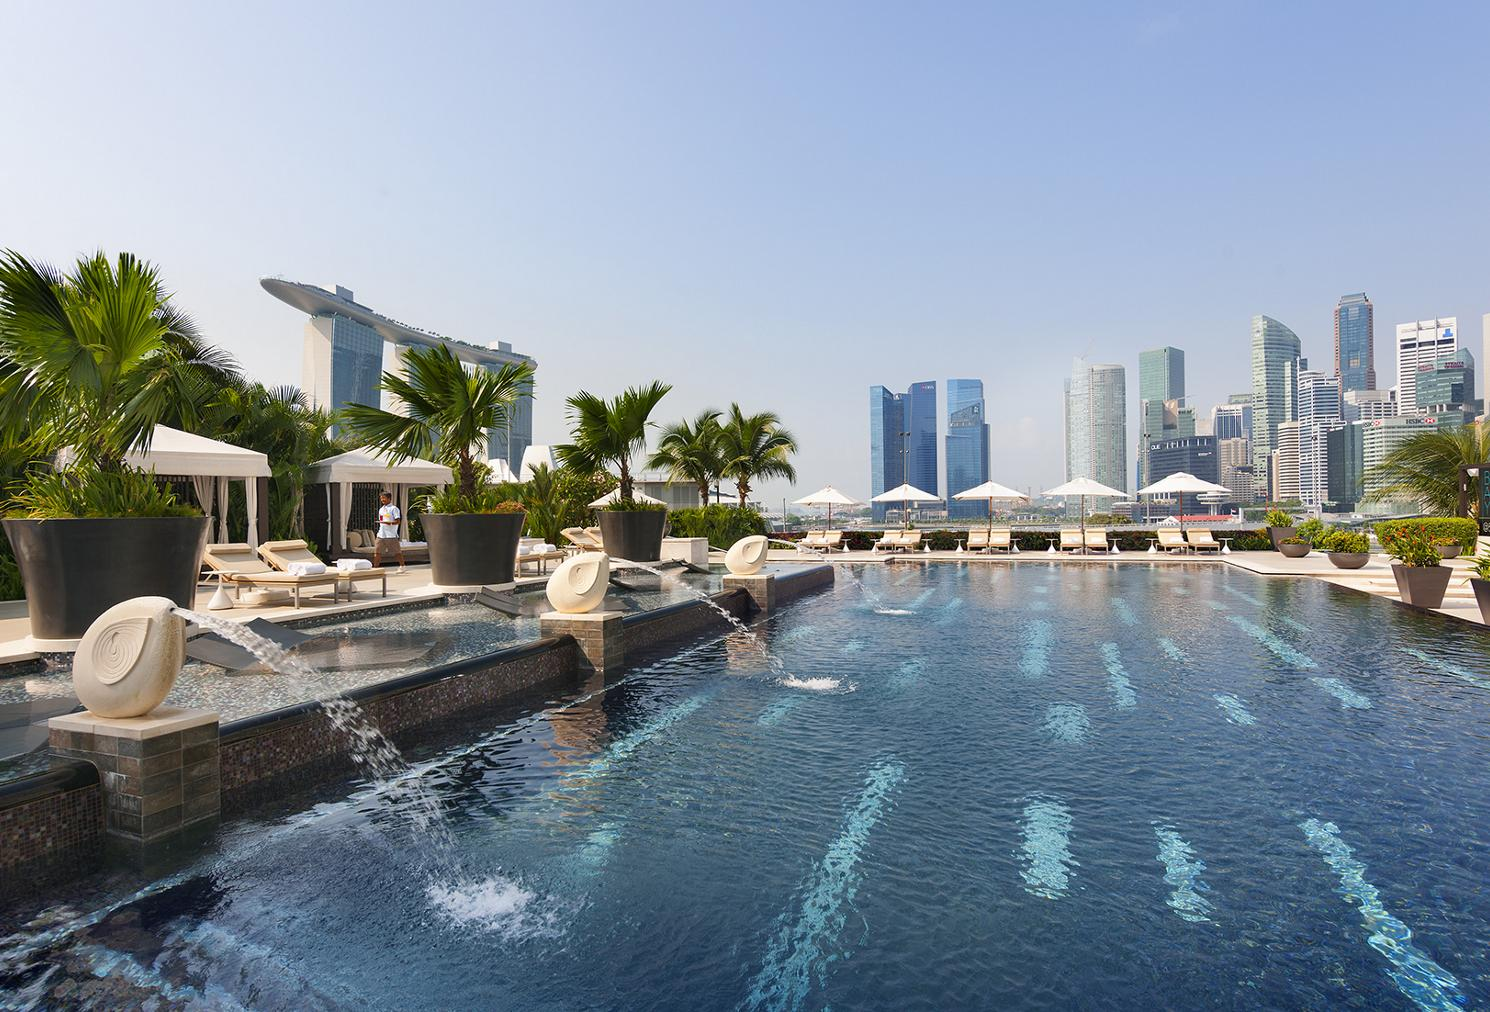 singapore-spa-and-wellness-fitness-and-wellness-pool.jpeg